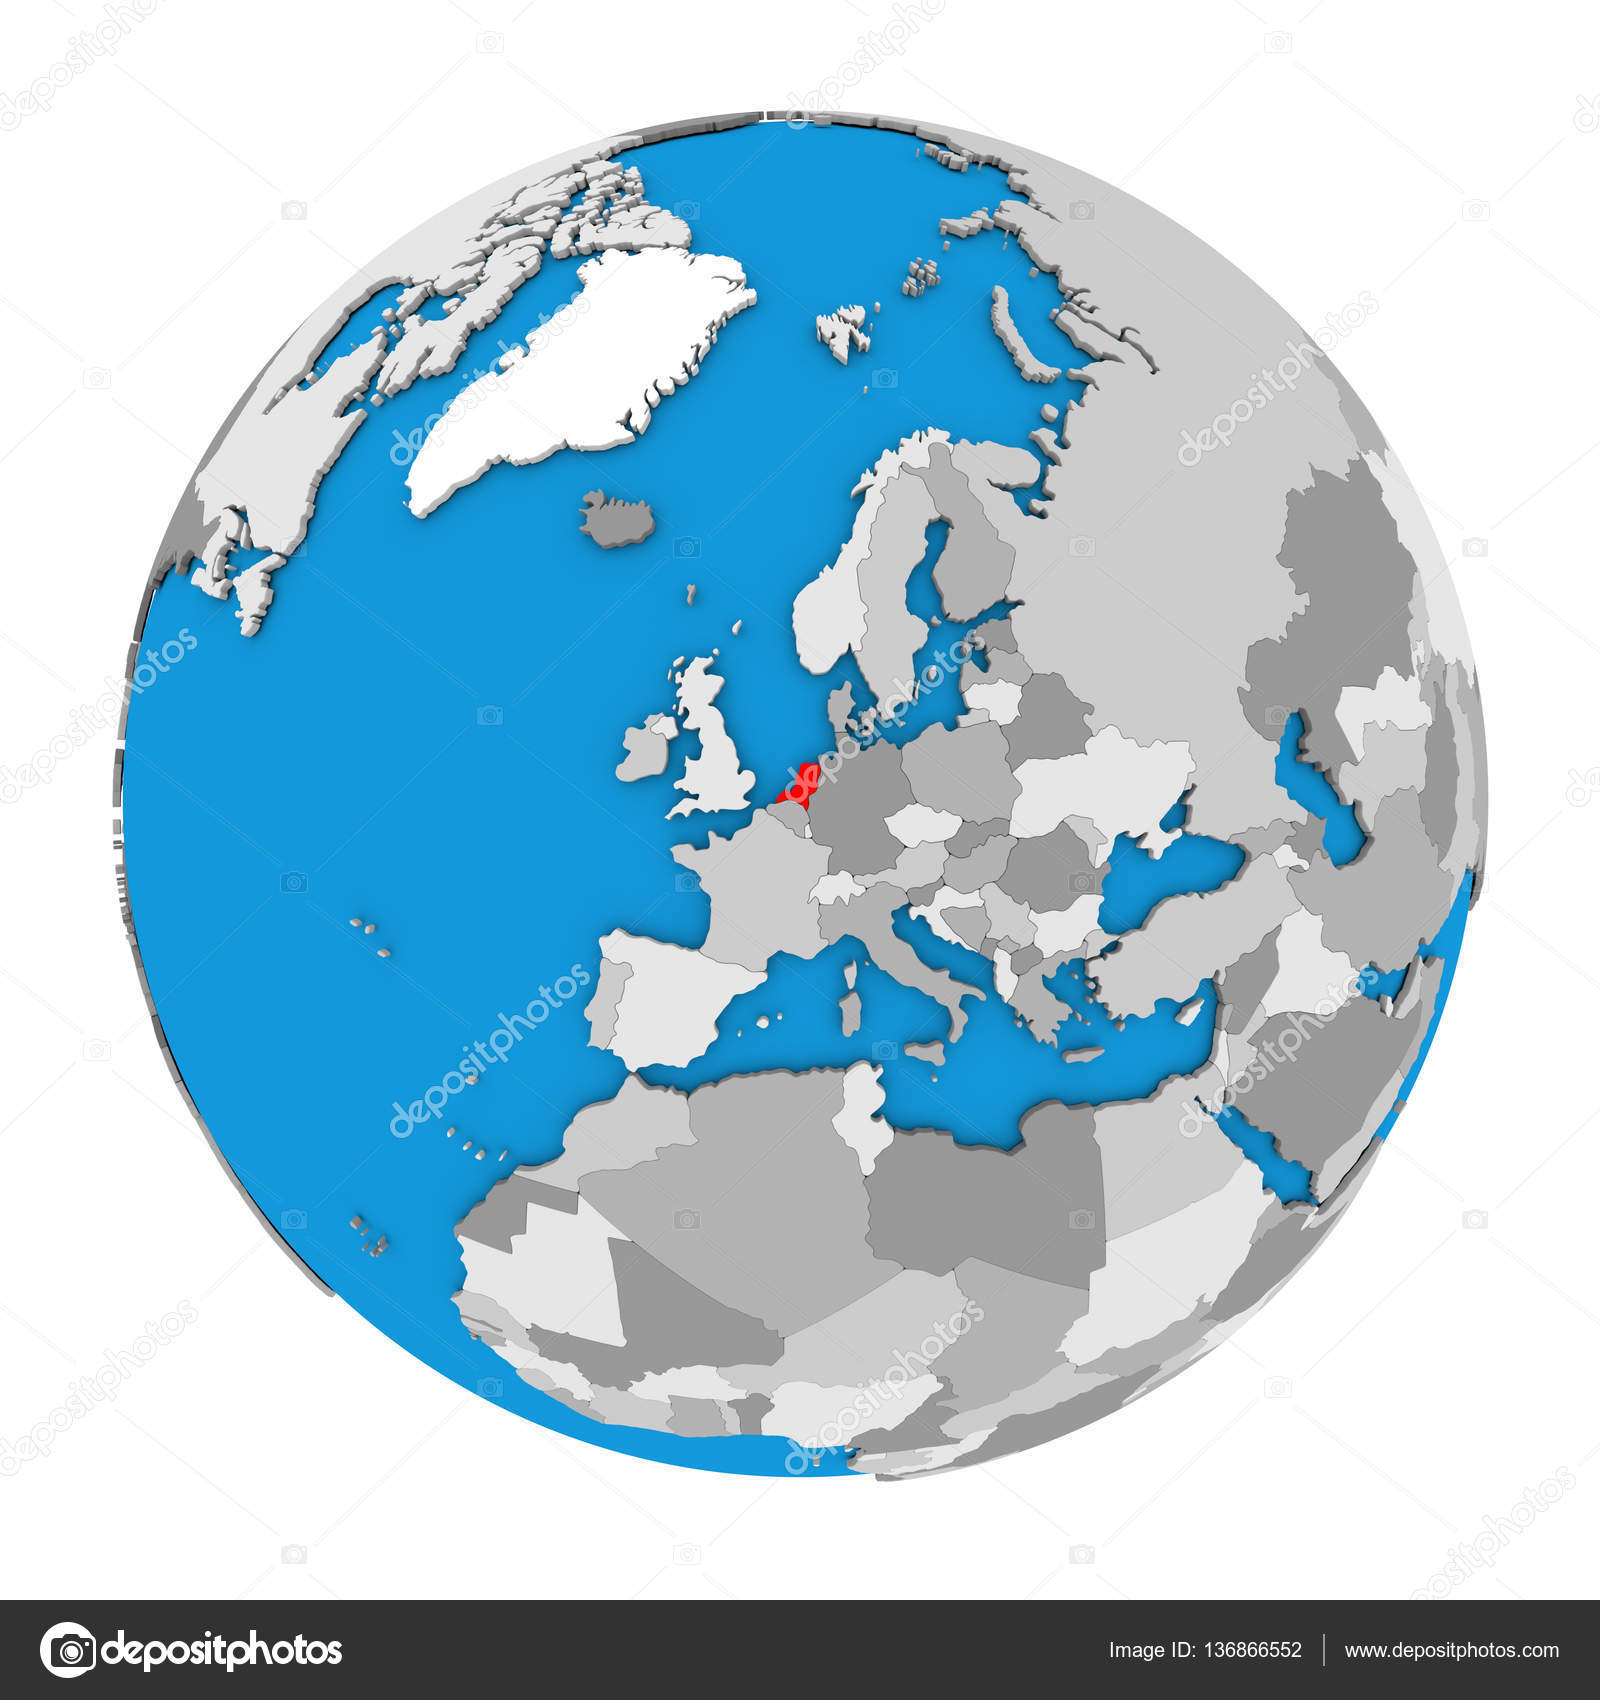 Netherlands on globe — Stock Photo © tom.griger #136866552